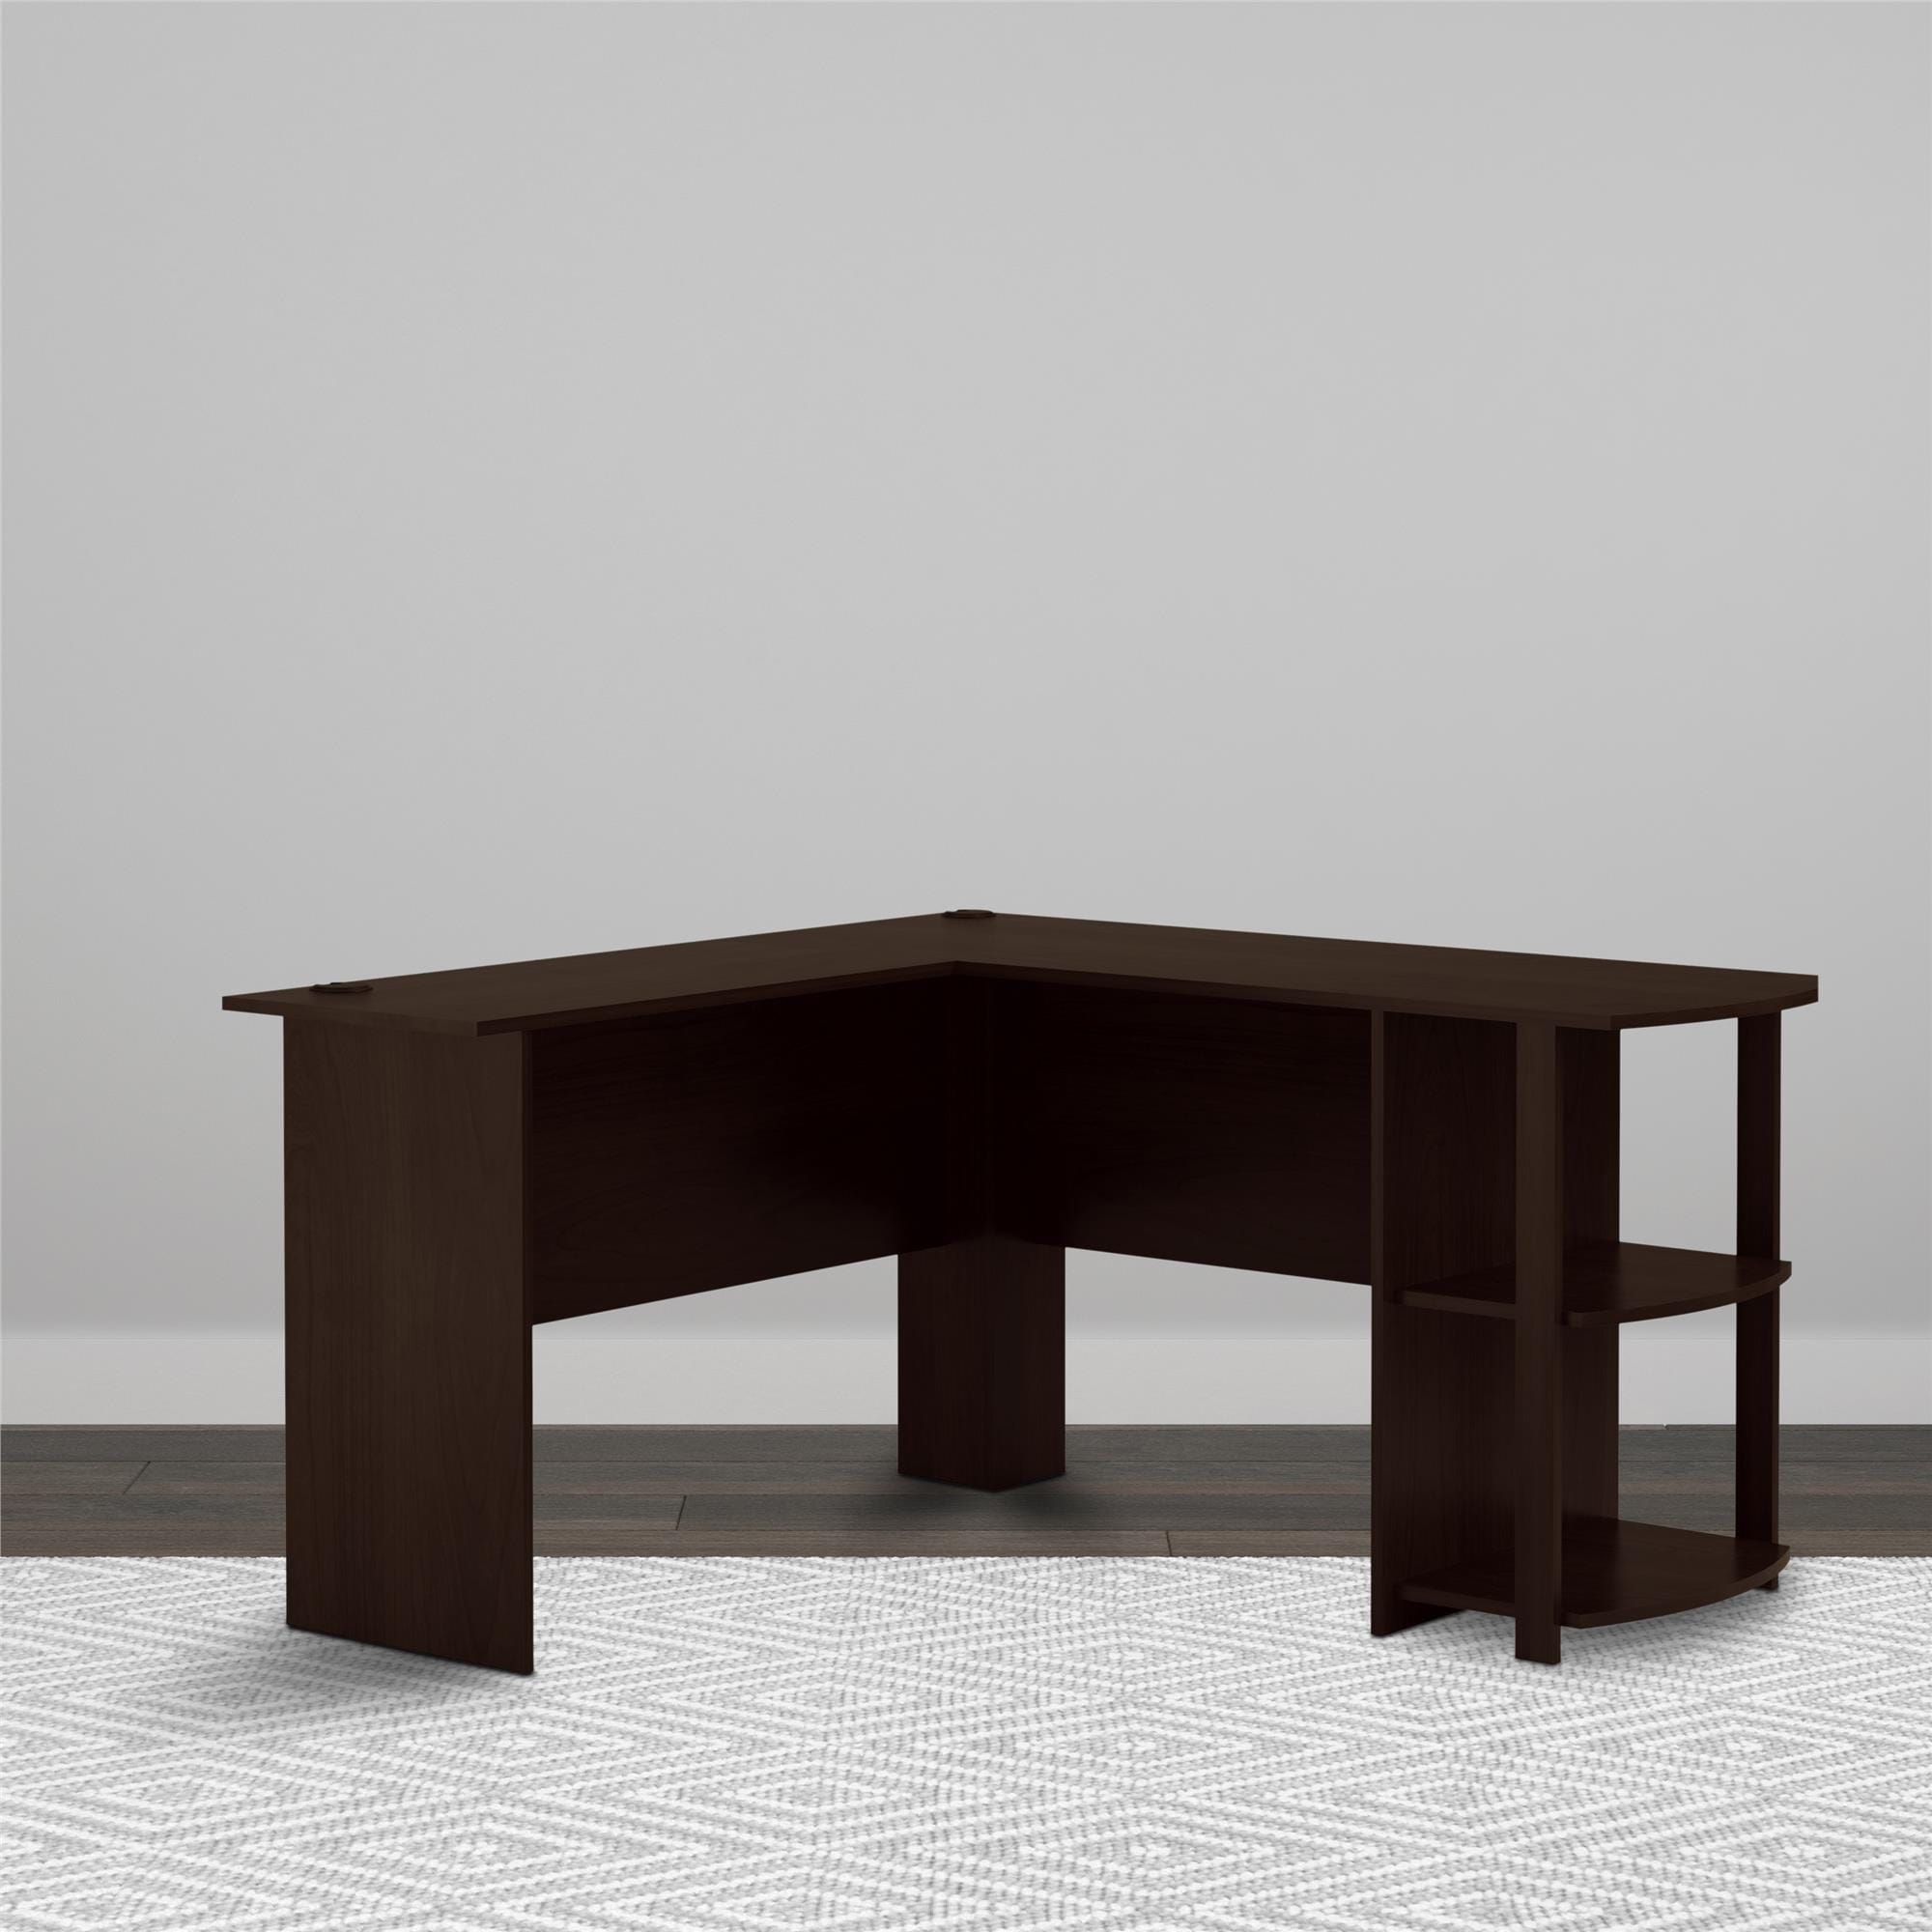 Shop Avenue Greene Abbott Lshaped Desk With Bookshelves Free - L shaped conference table